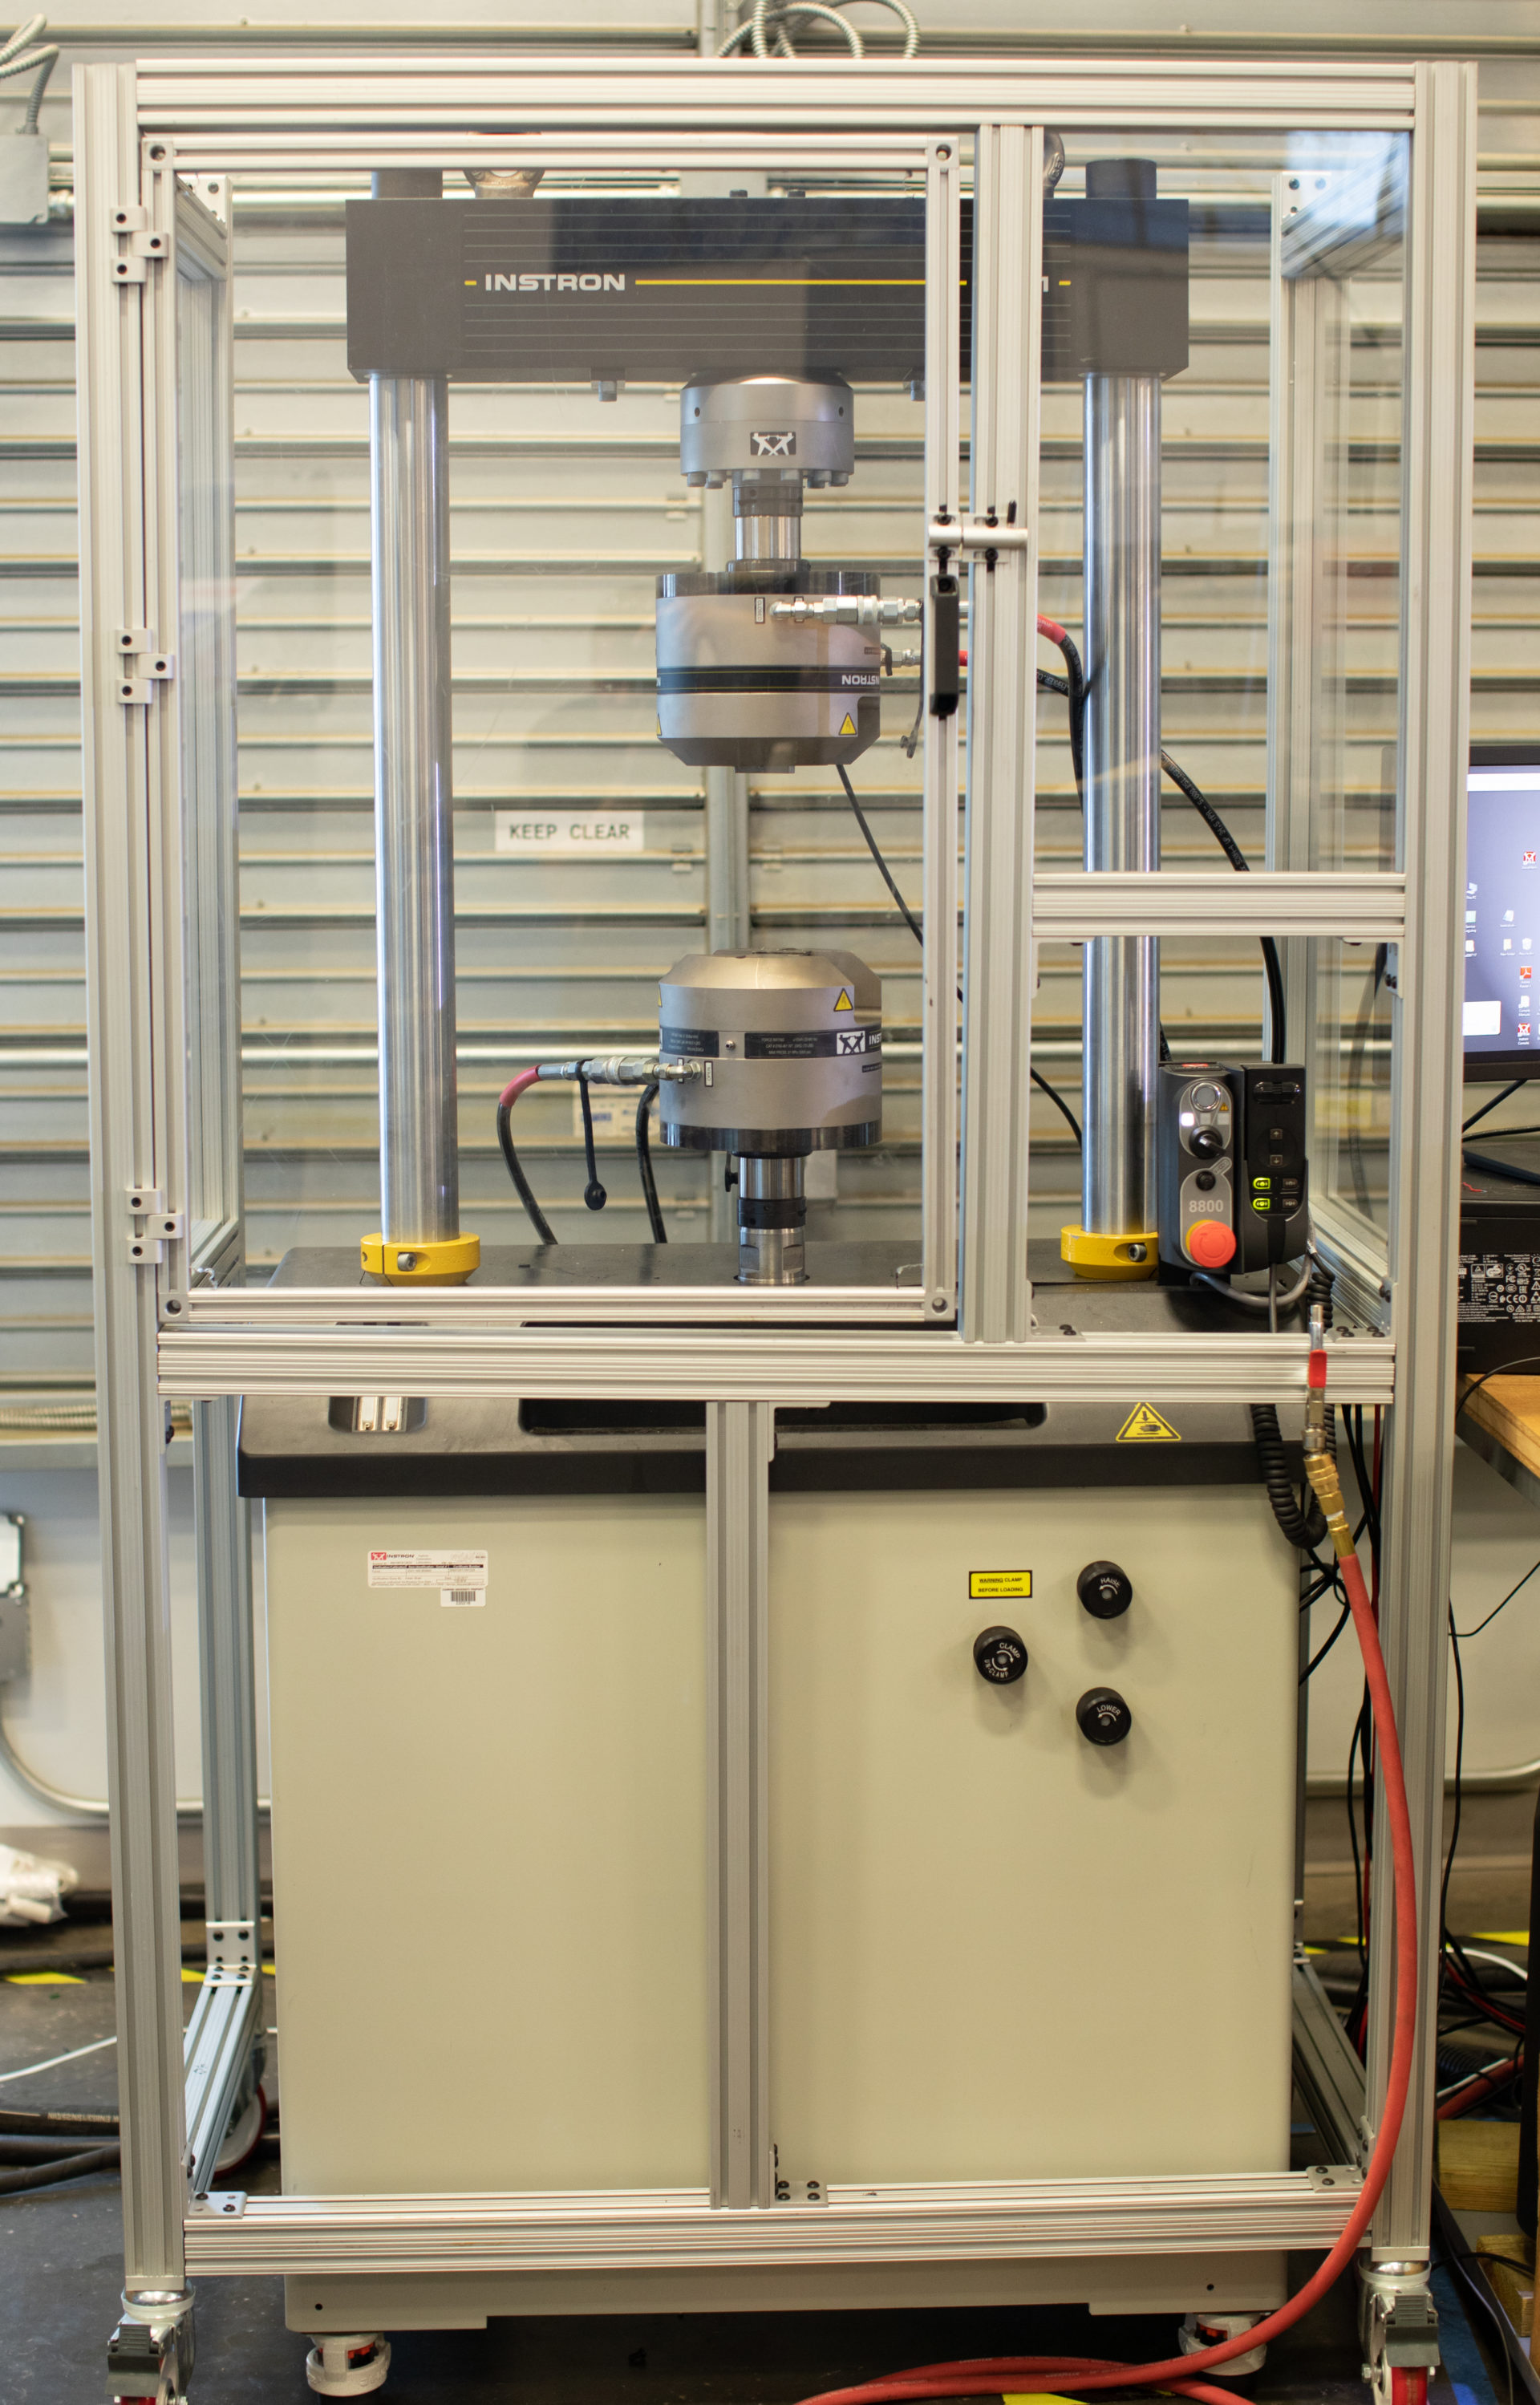 Tensile testing machine used in the Manufacturing Lab